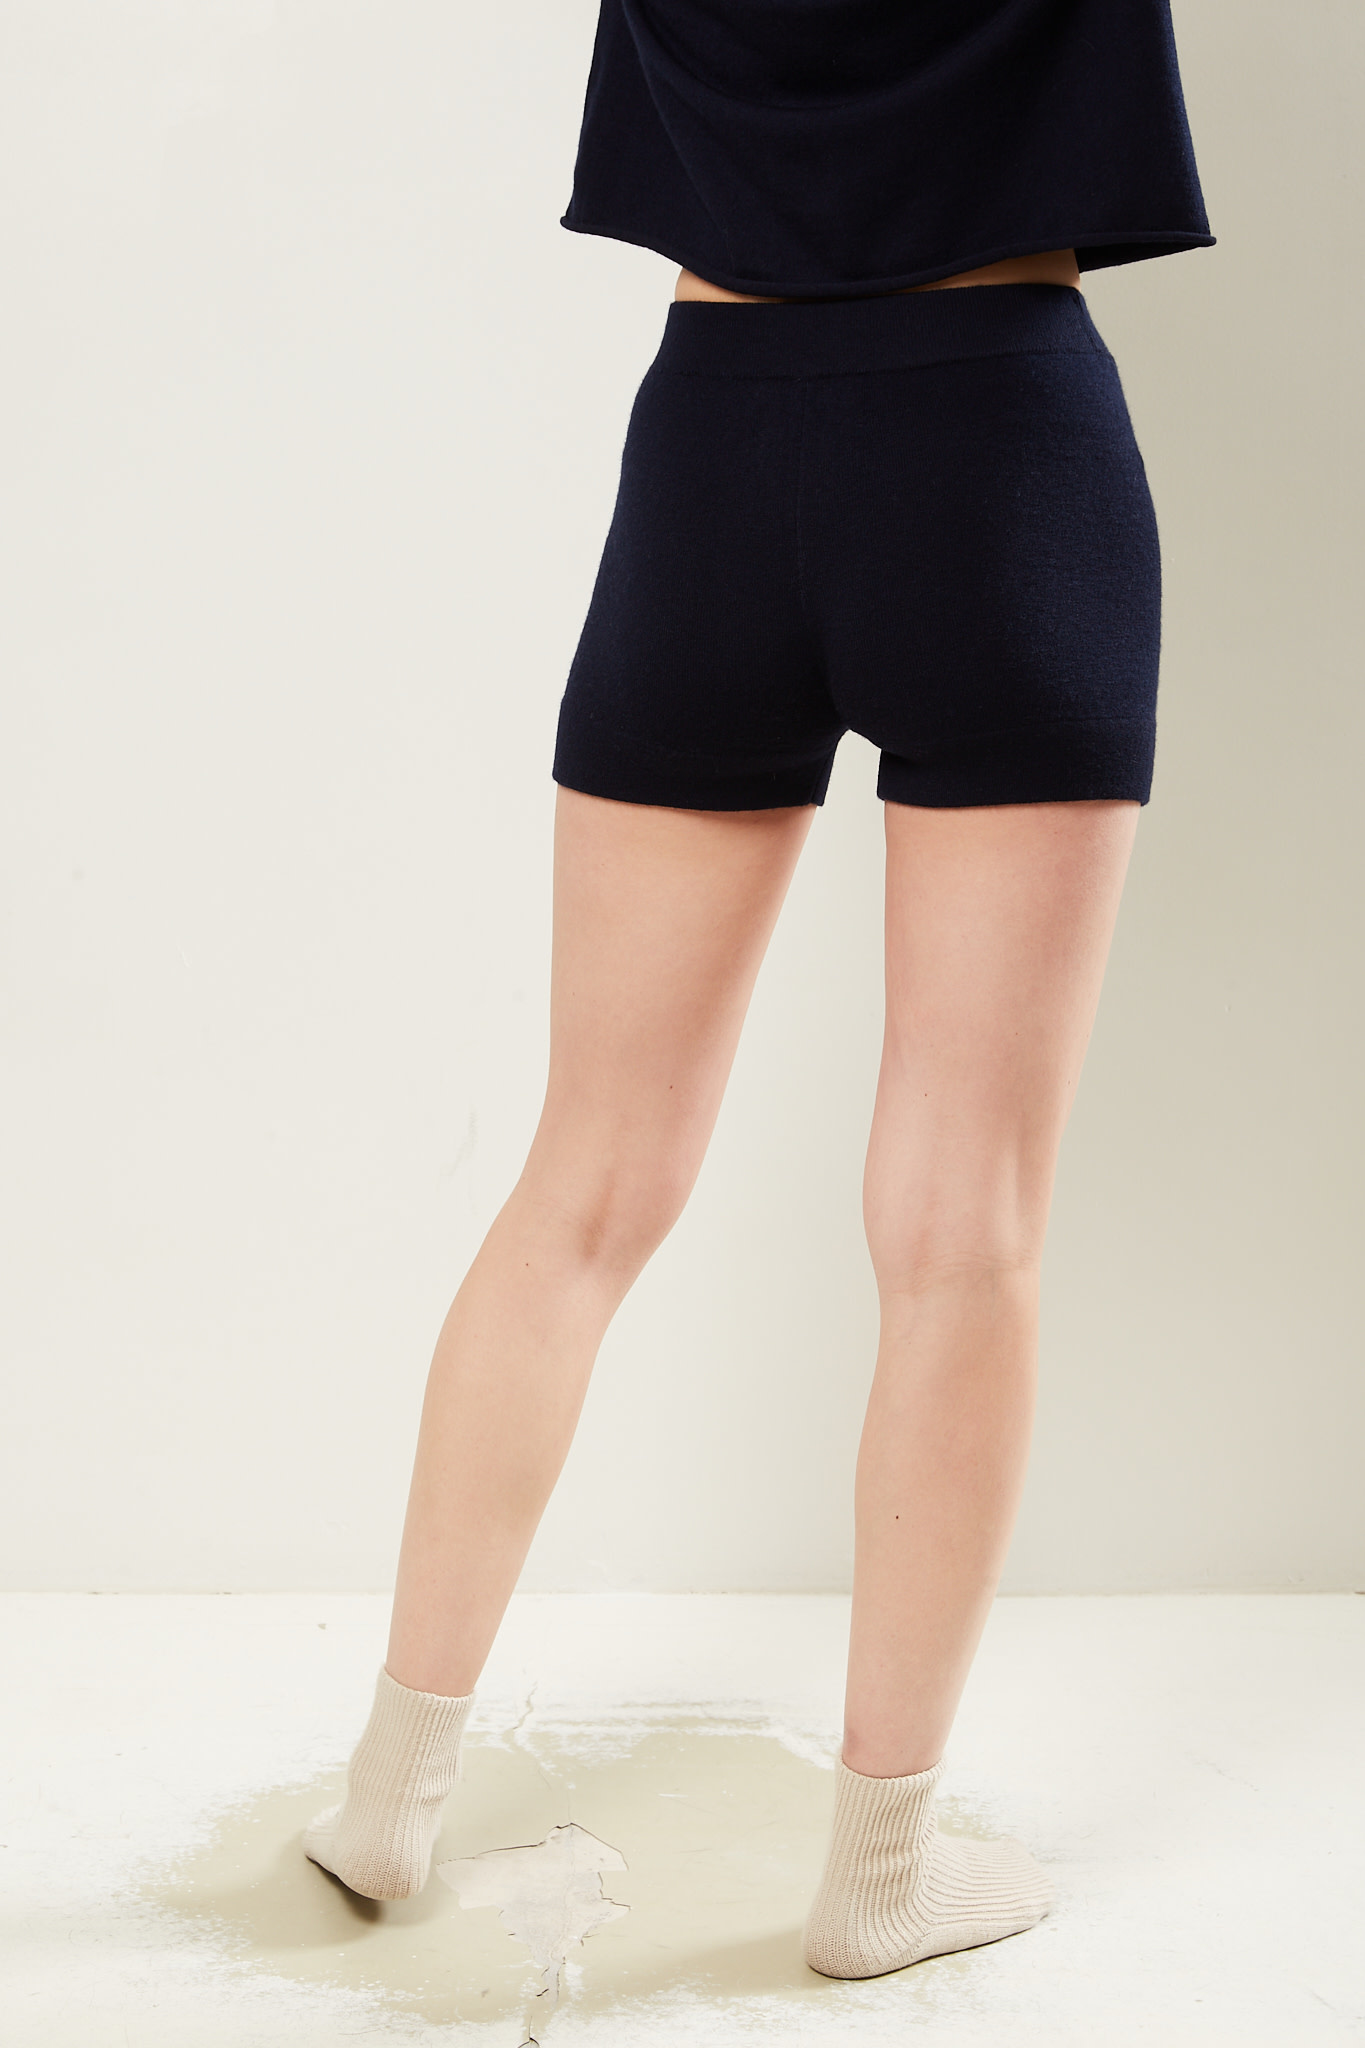 extreme cashmere - Very shorts